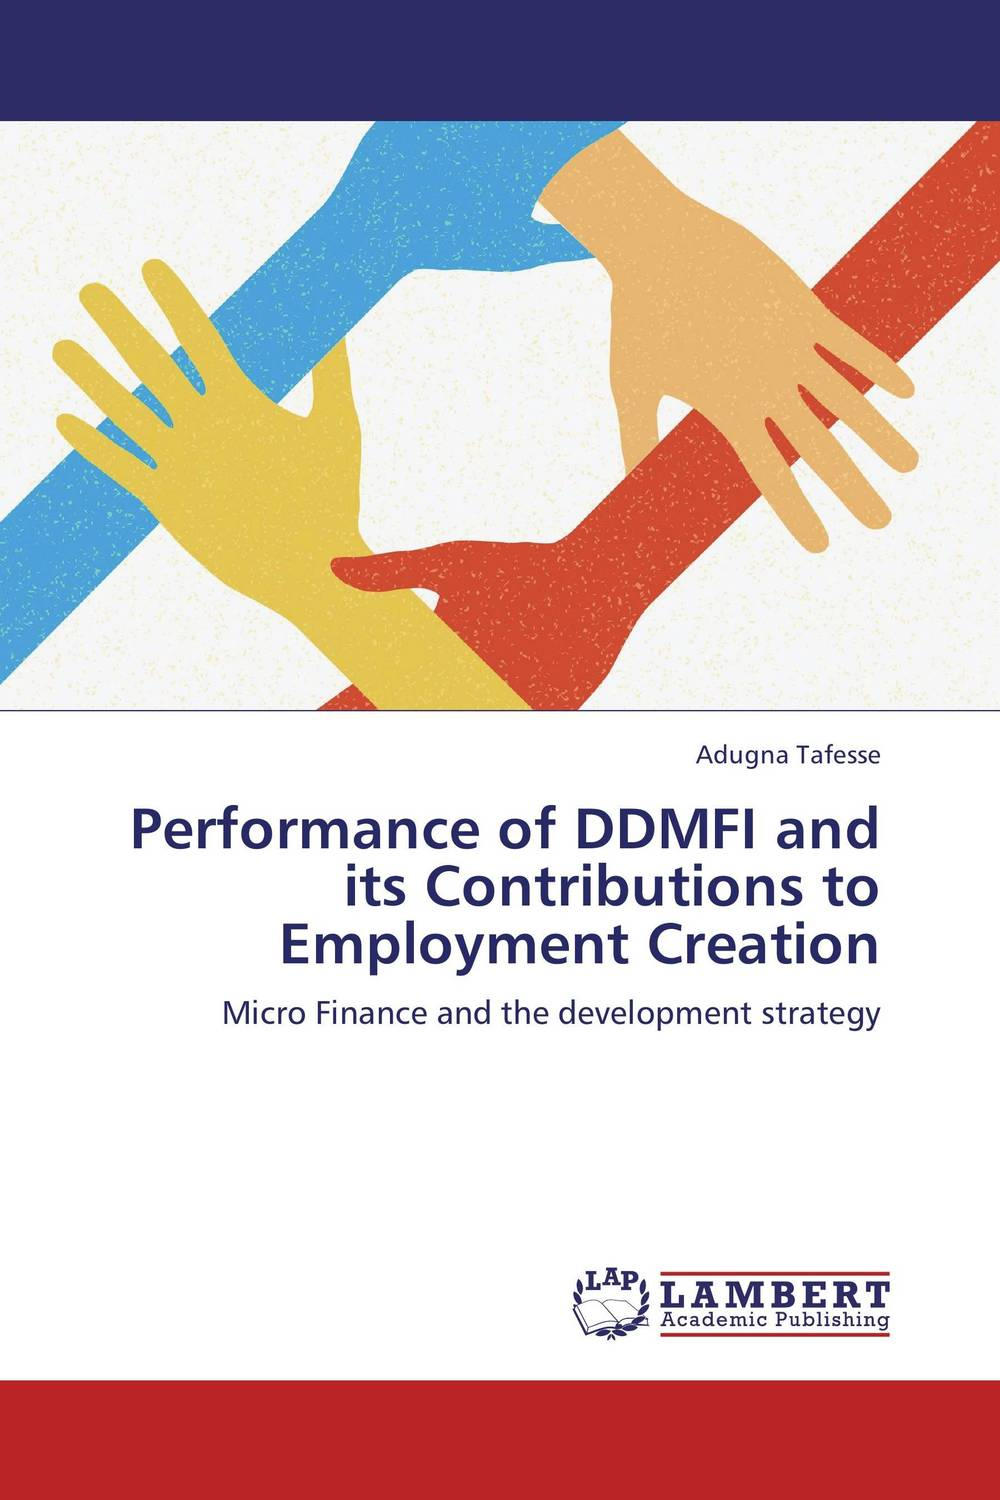 Performance of DDMFI and its Contributions to Employment Creation купить